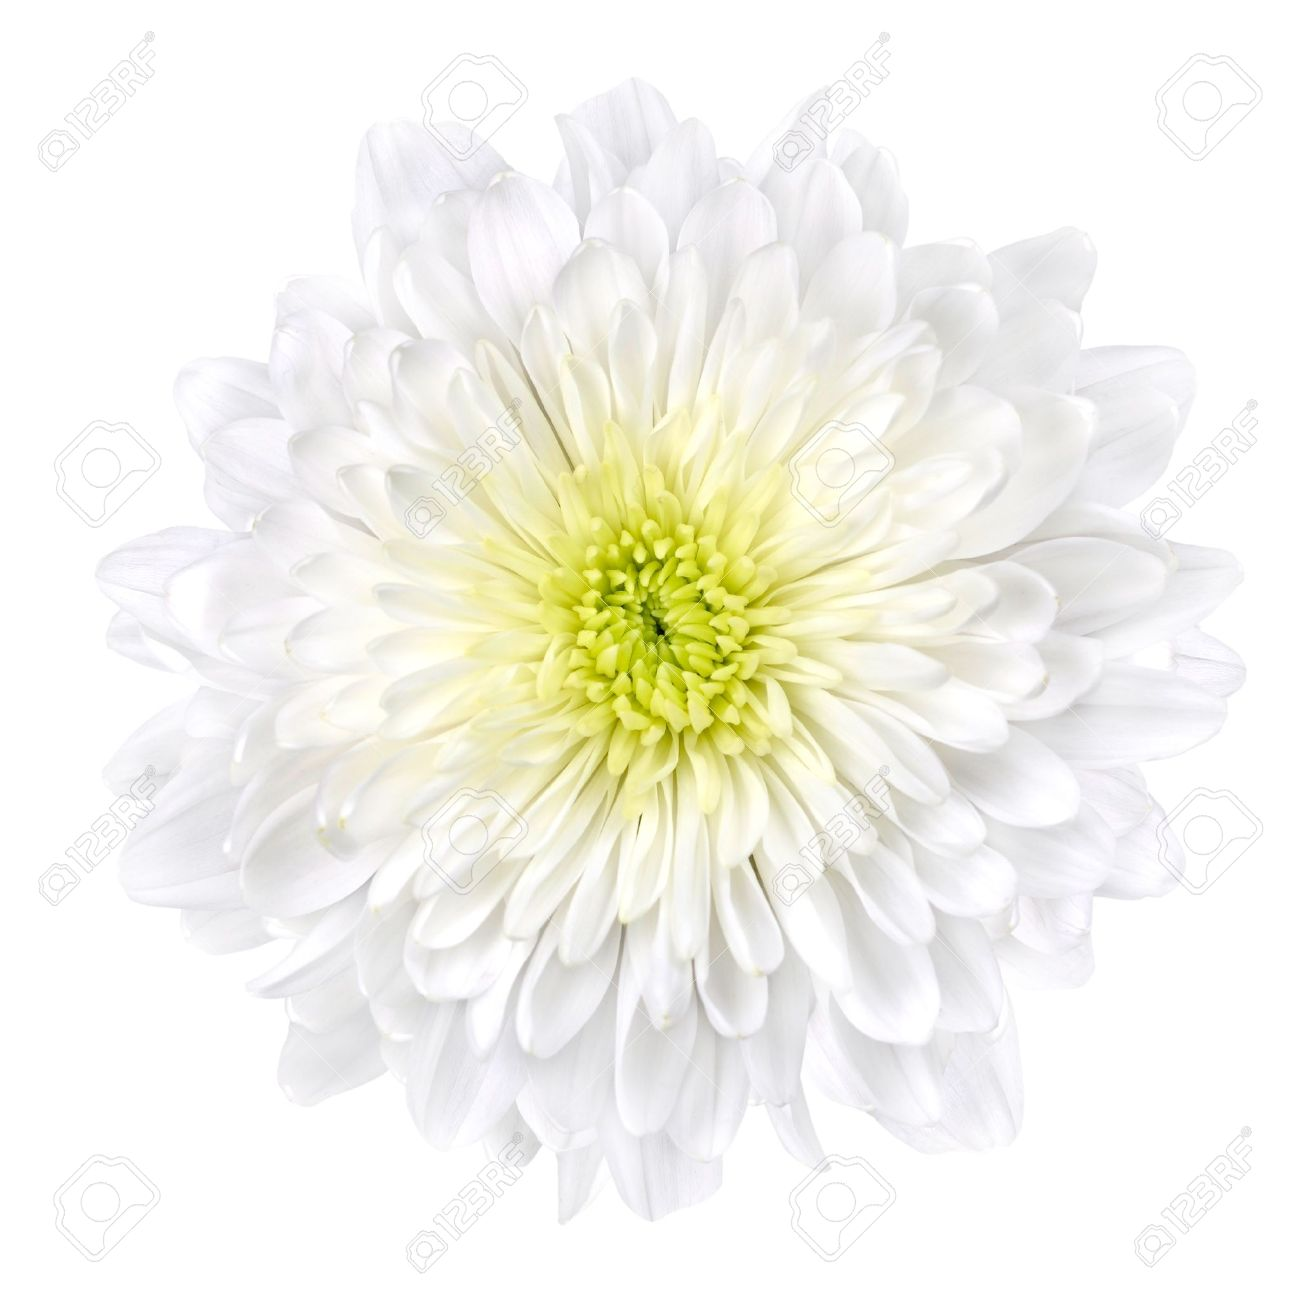 Single White Chrysanthemum Flower with Yellow Center Isolated over White Background. Beautiful Dahlia Flowerhead Macro Stock Photo - 9643127